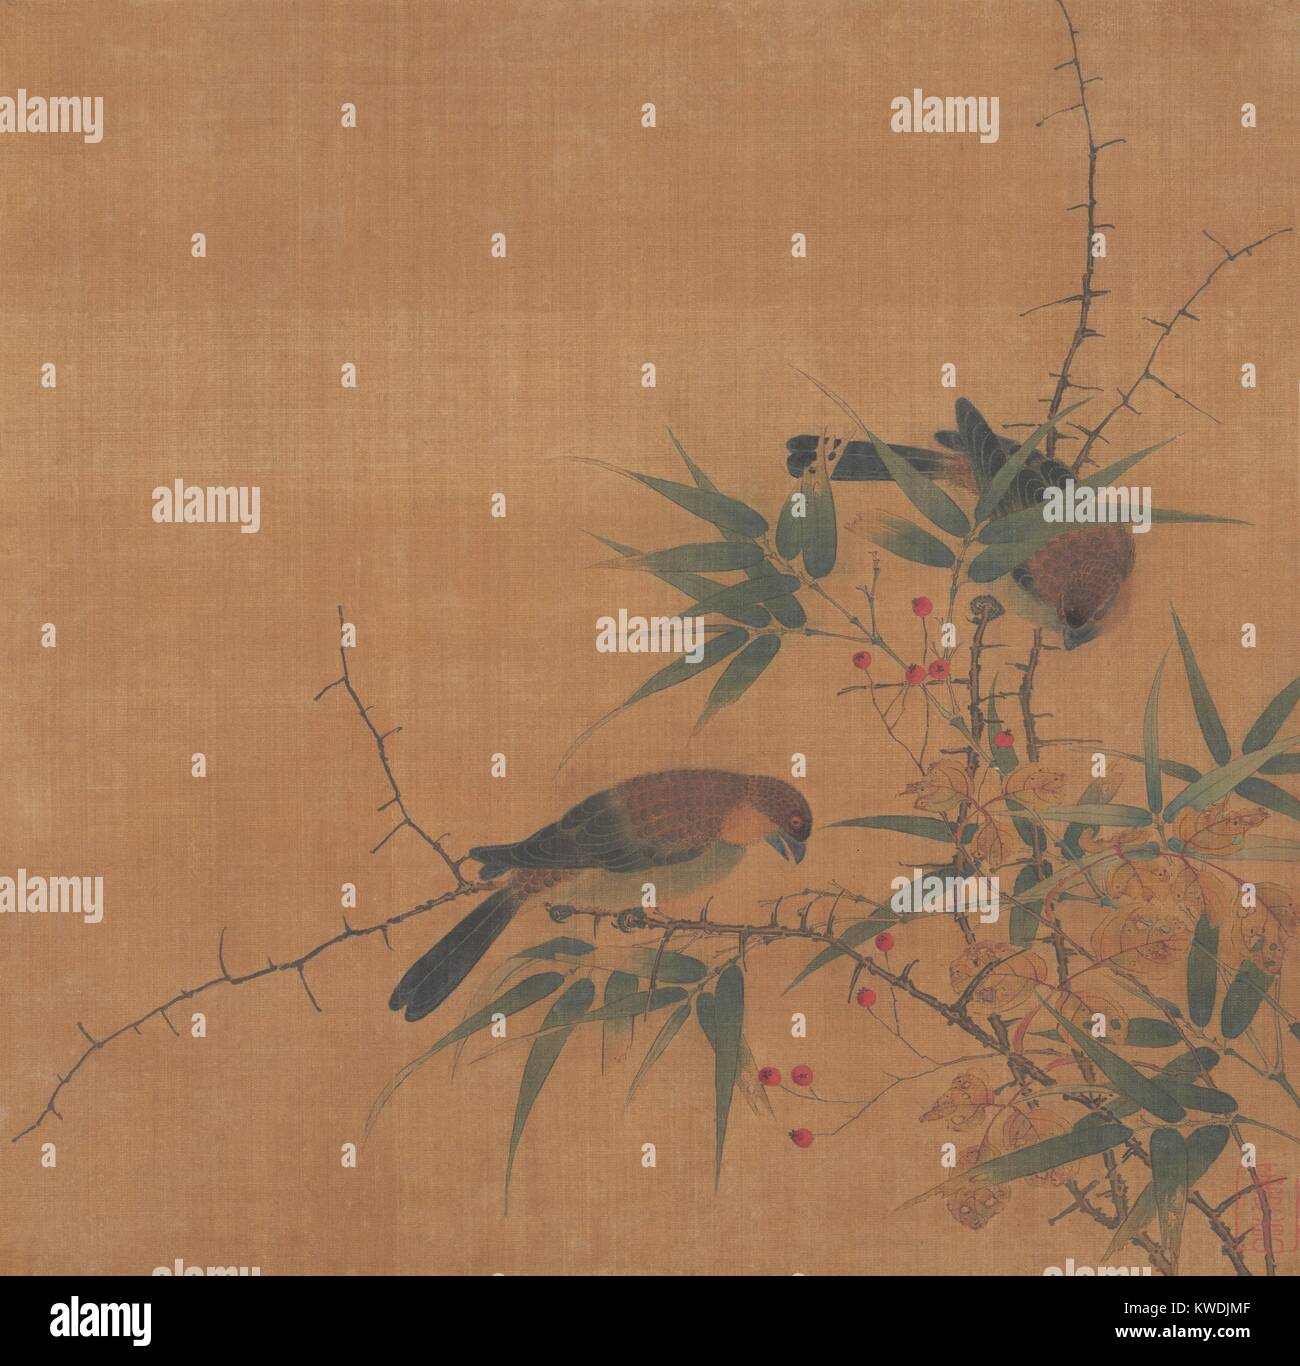 BAMBOO BRANCH WITH BERRIES AND BIRDS, 17th c., Chinese painting, Qing dynasty, ink, color on silk. Birds were one - Stock Image